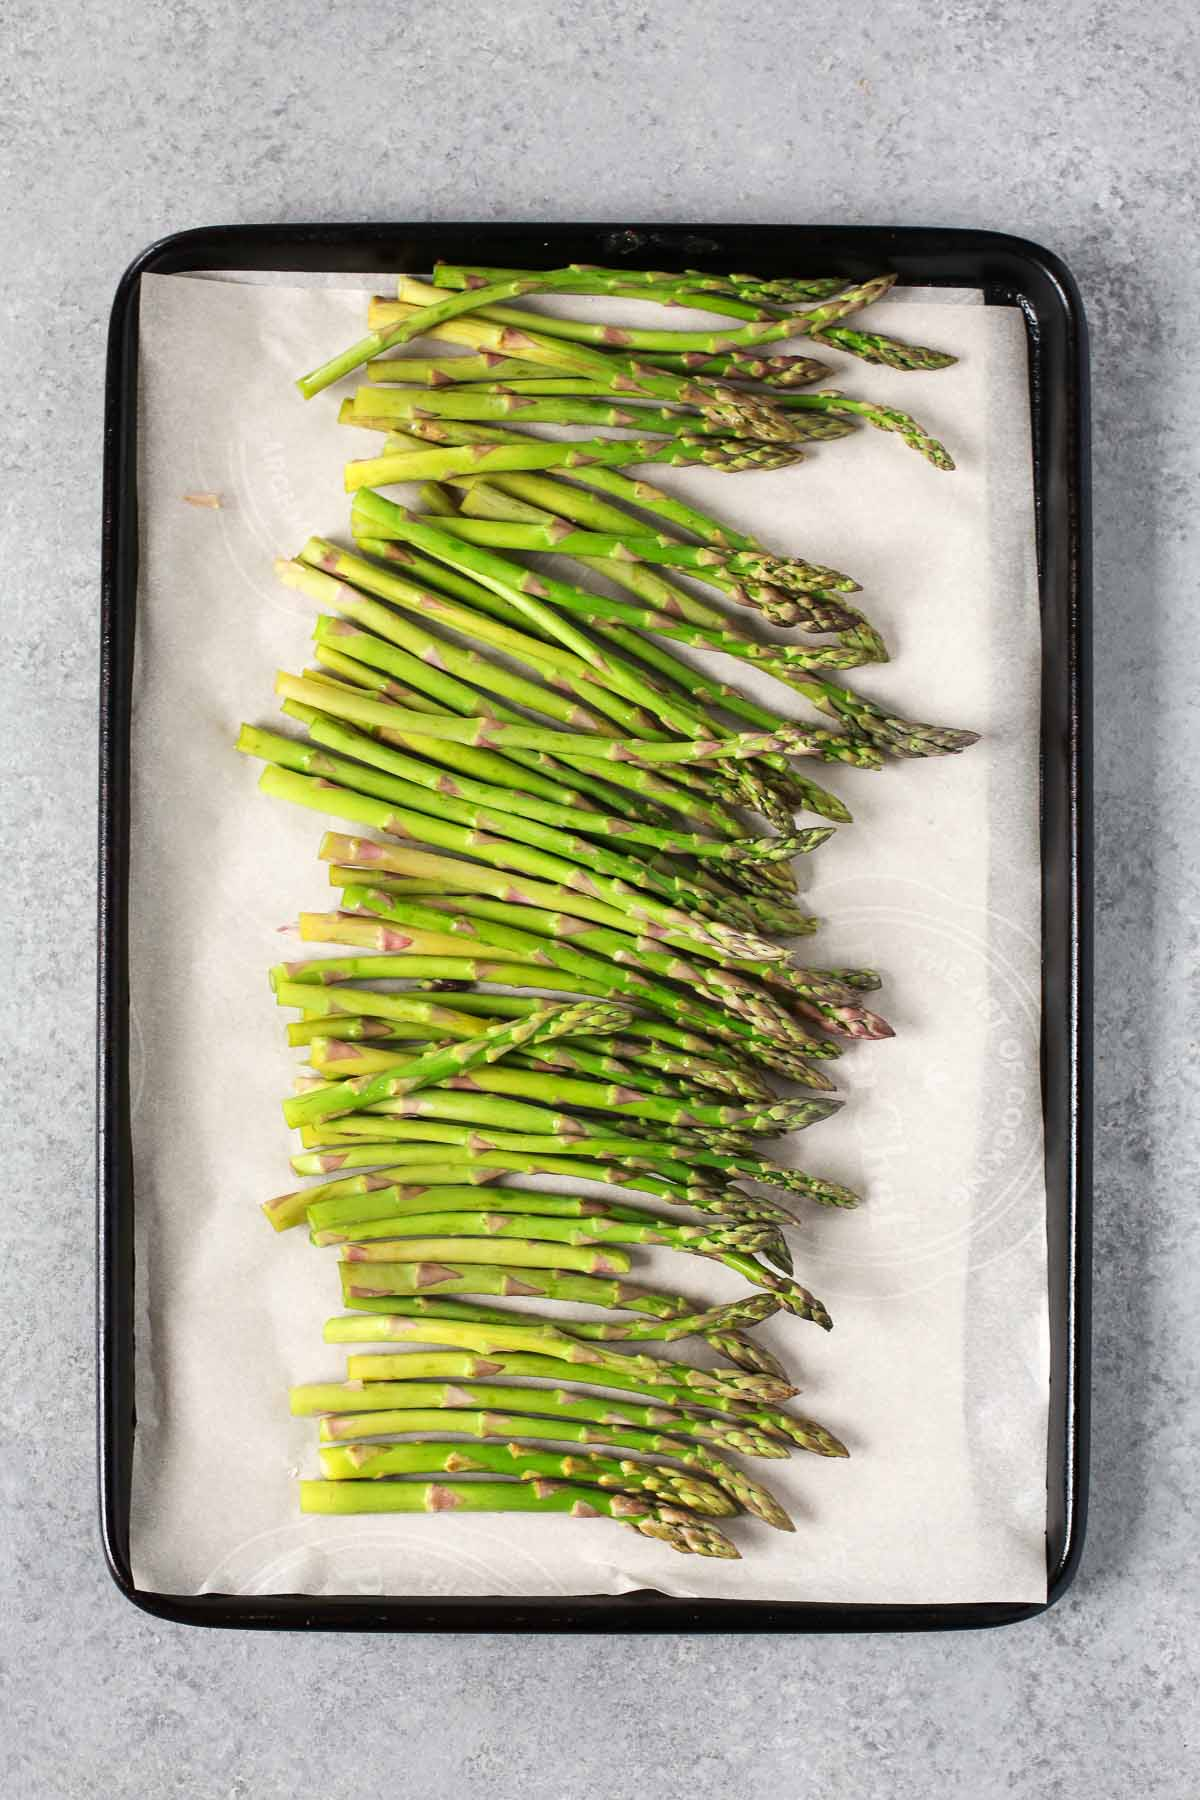 Placing prepared asparagus onto a sheet pan lined with parchment paper.